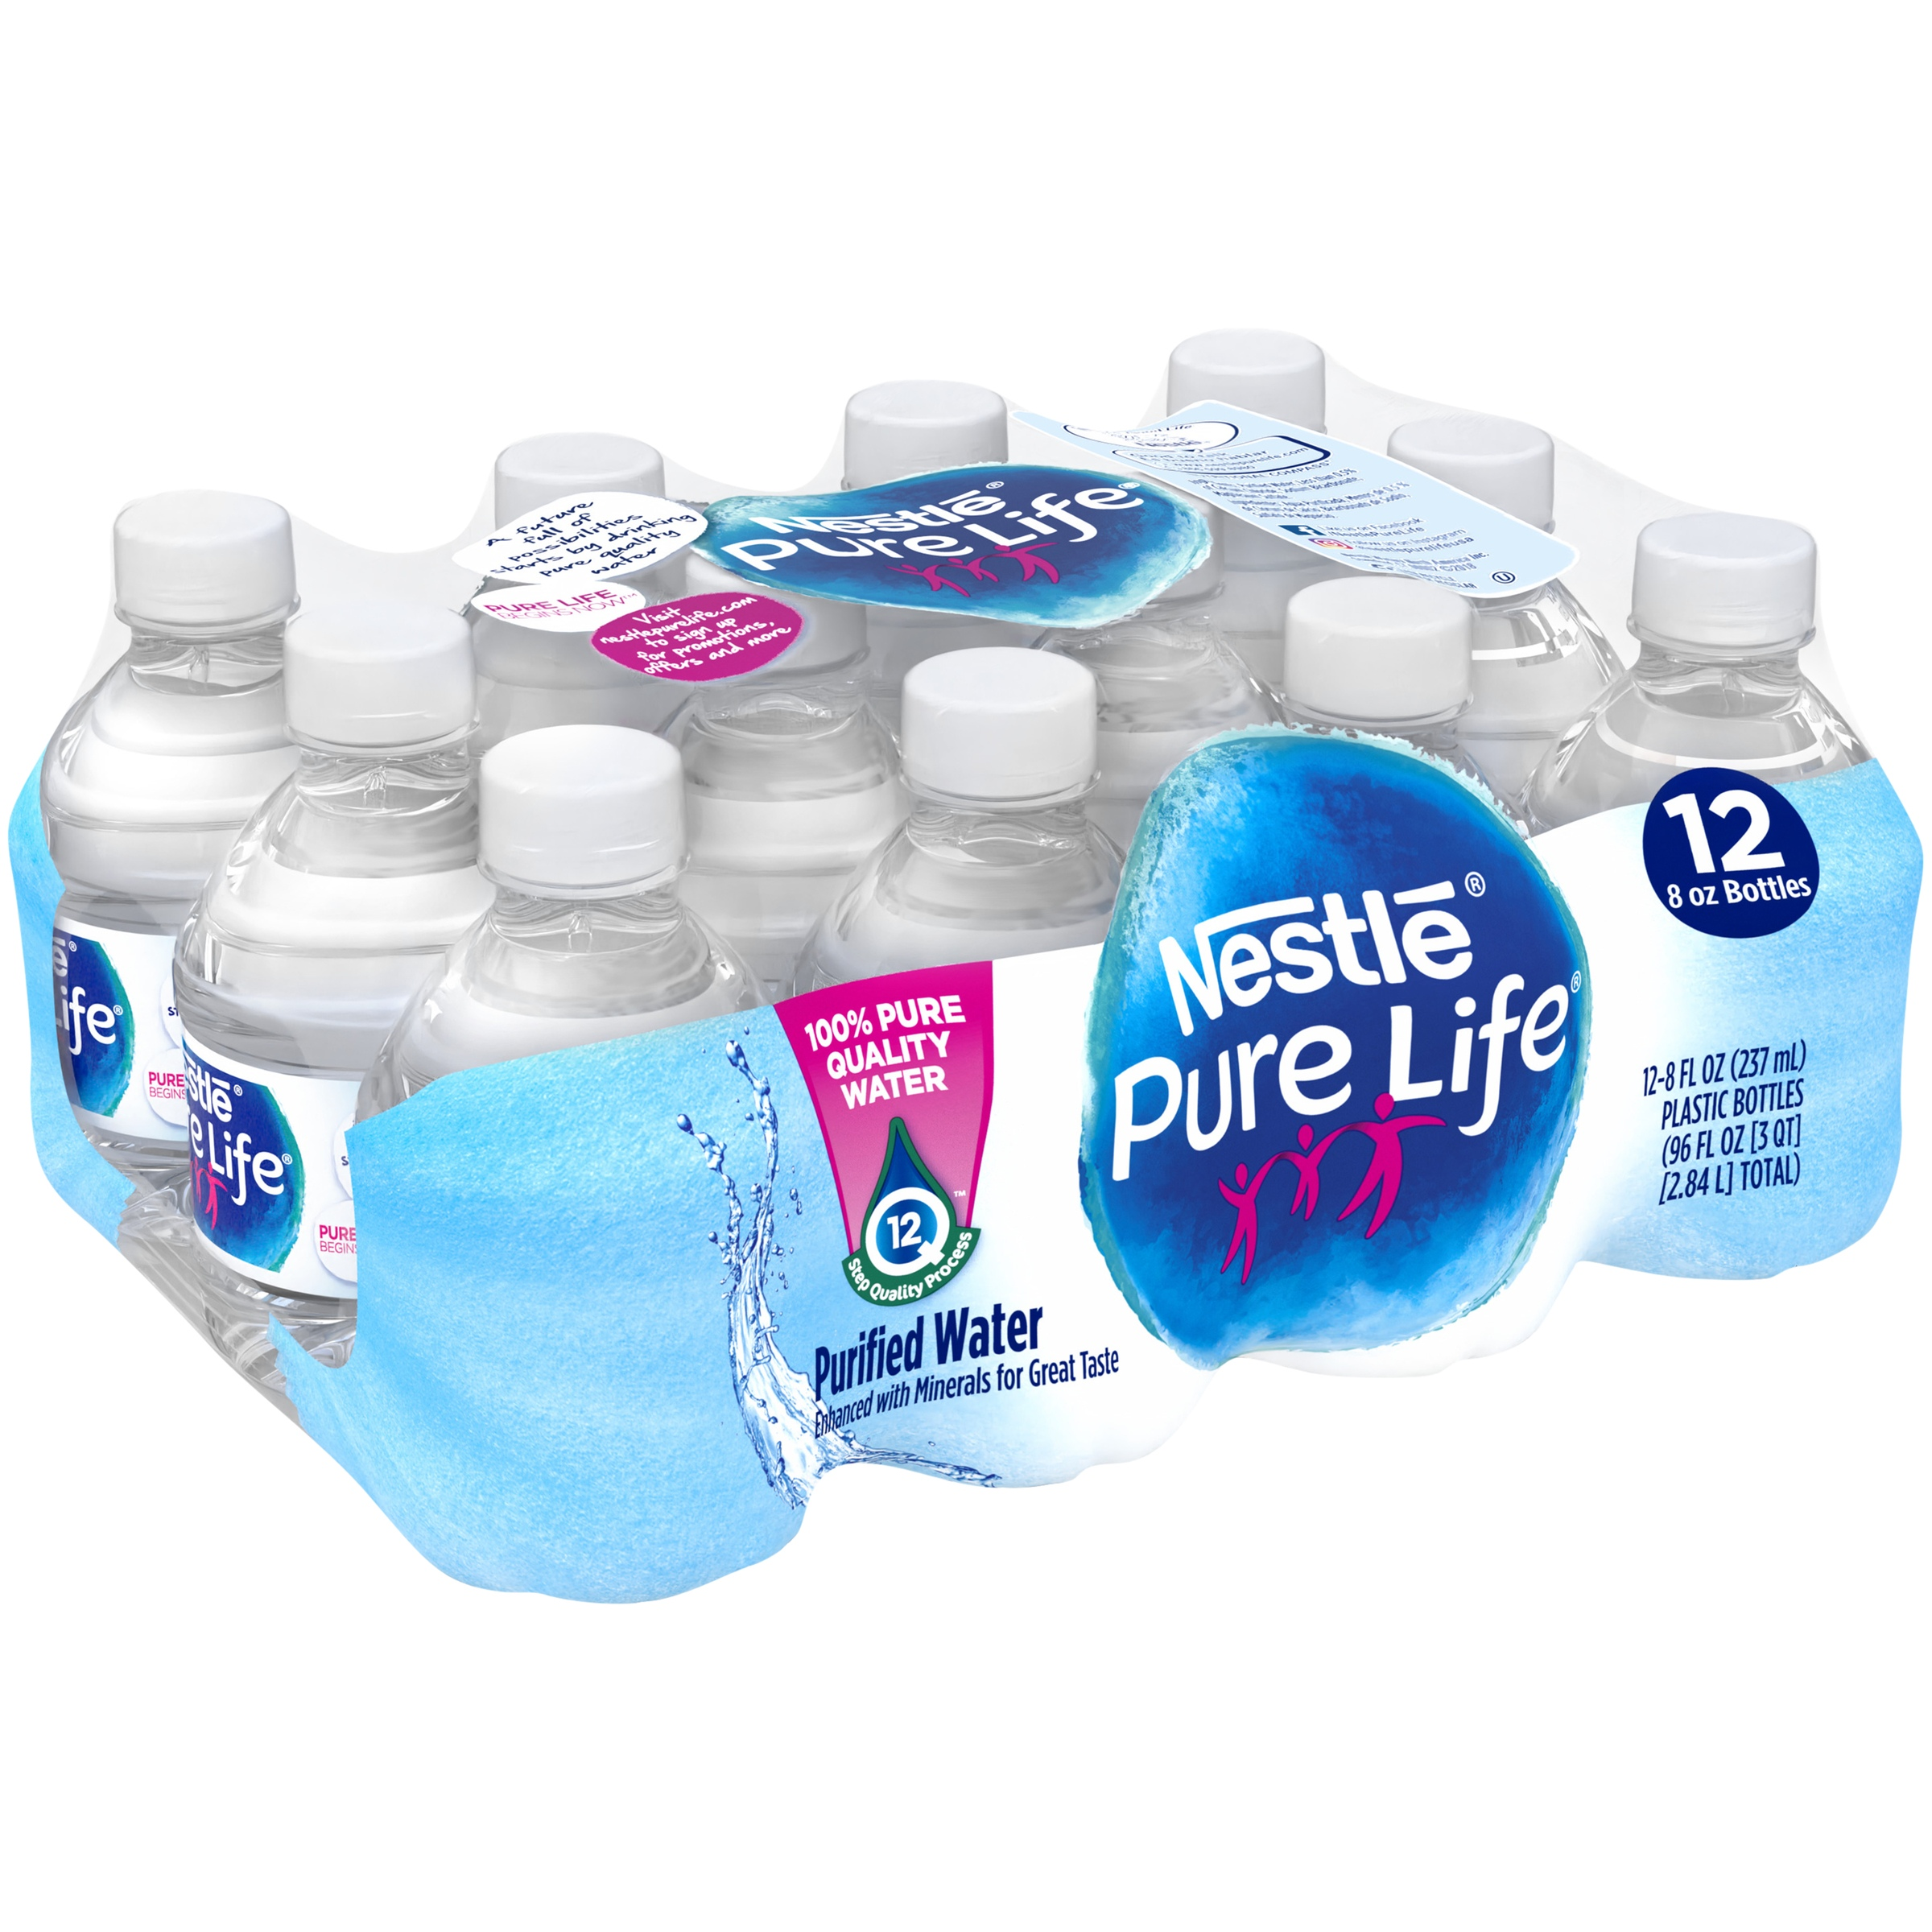 53f5d5f155 Nestle Pure Life Purified Water, 8 Fl. Oz., 12 Count - Walmart.com